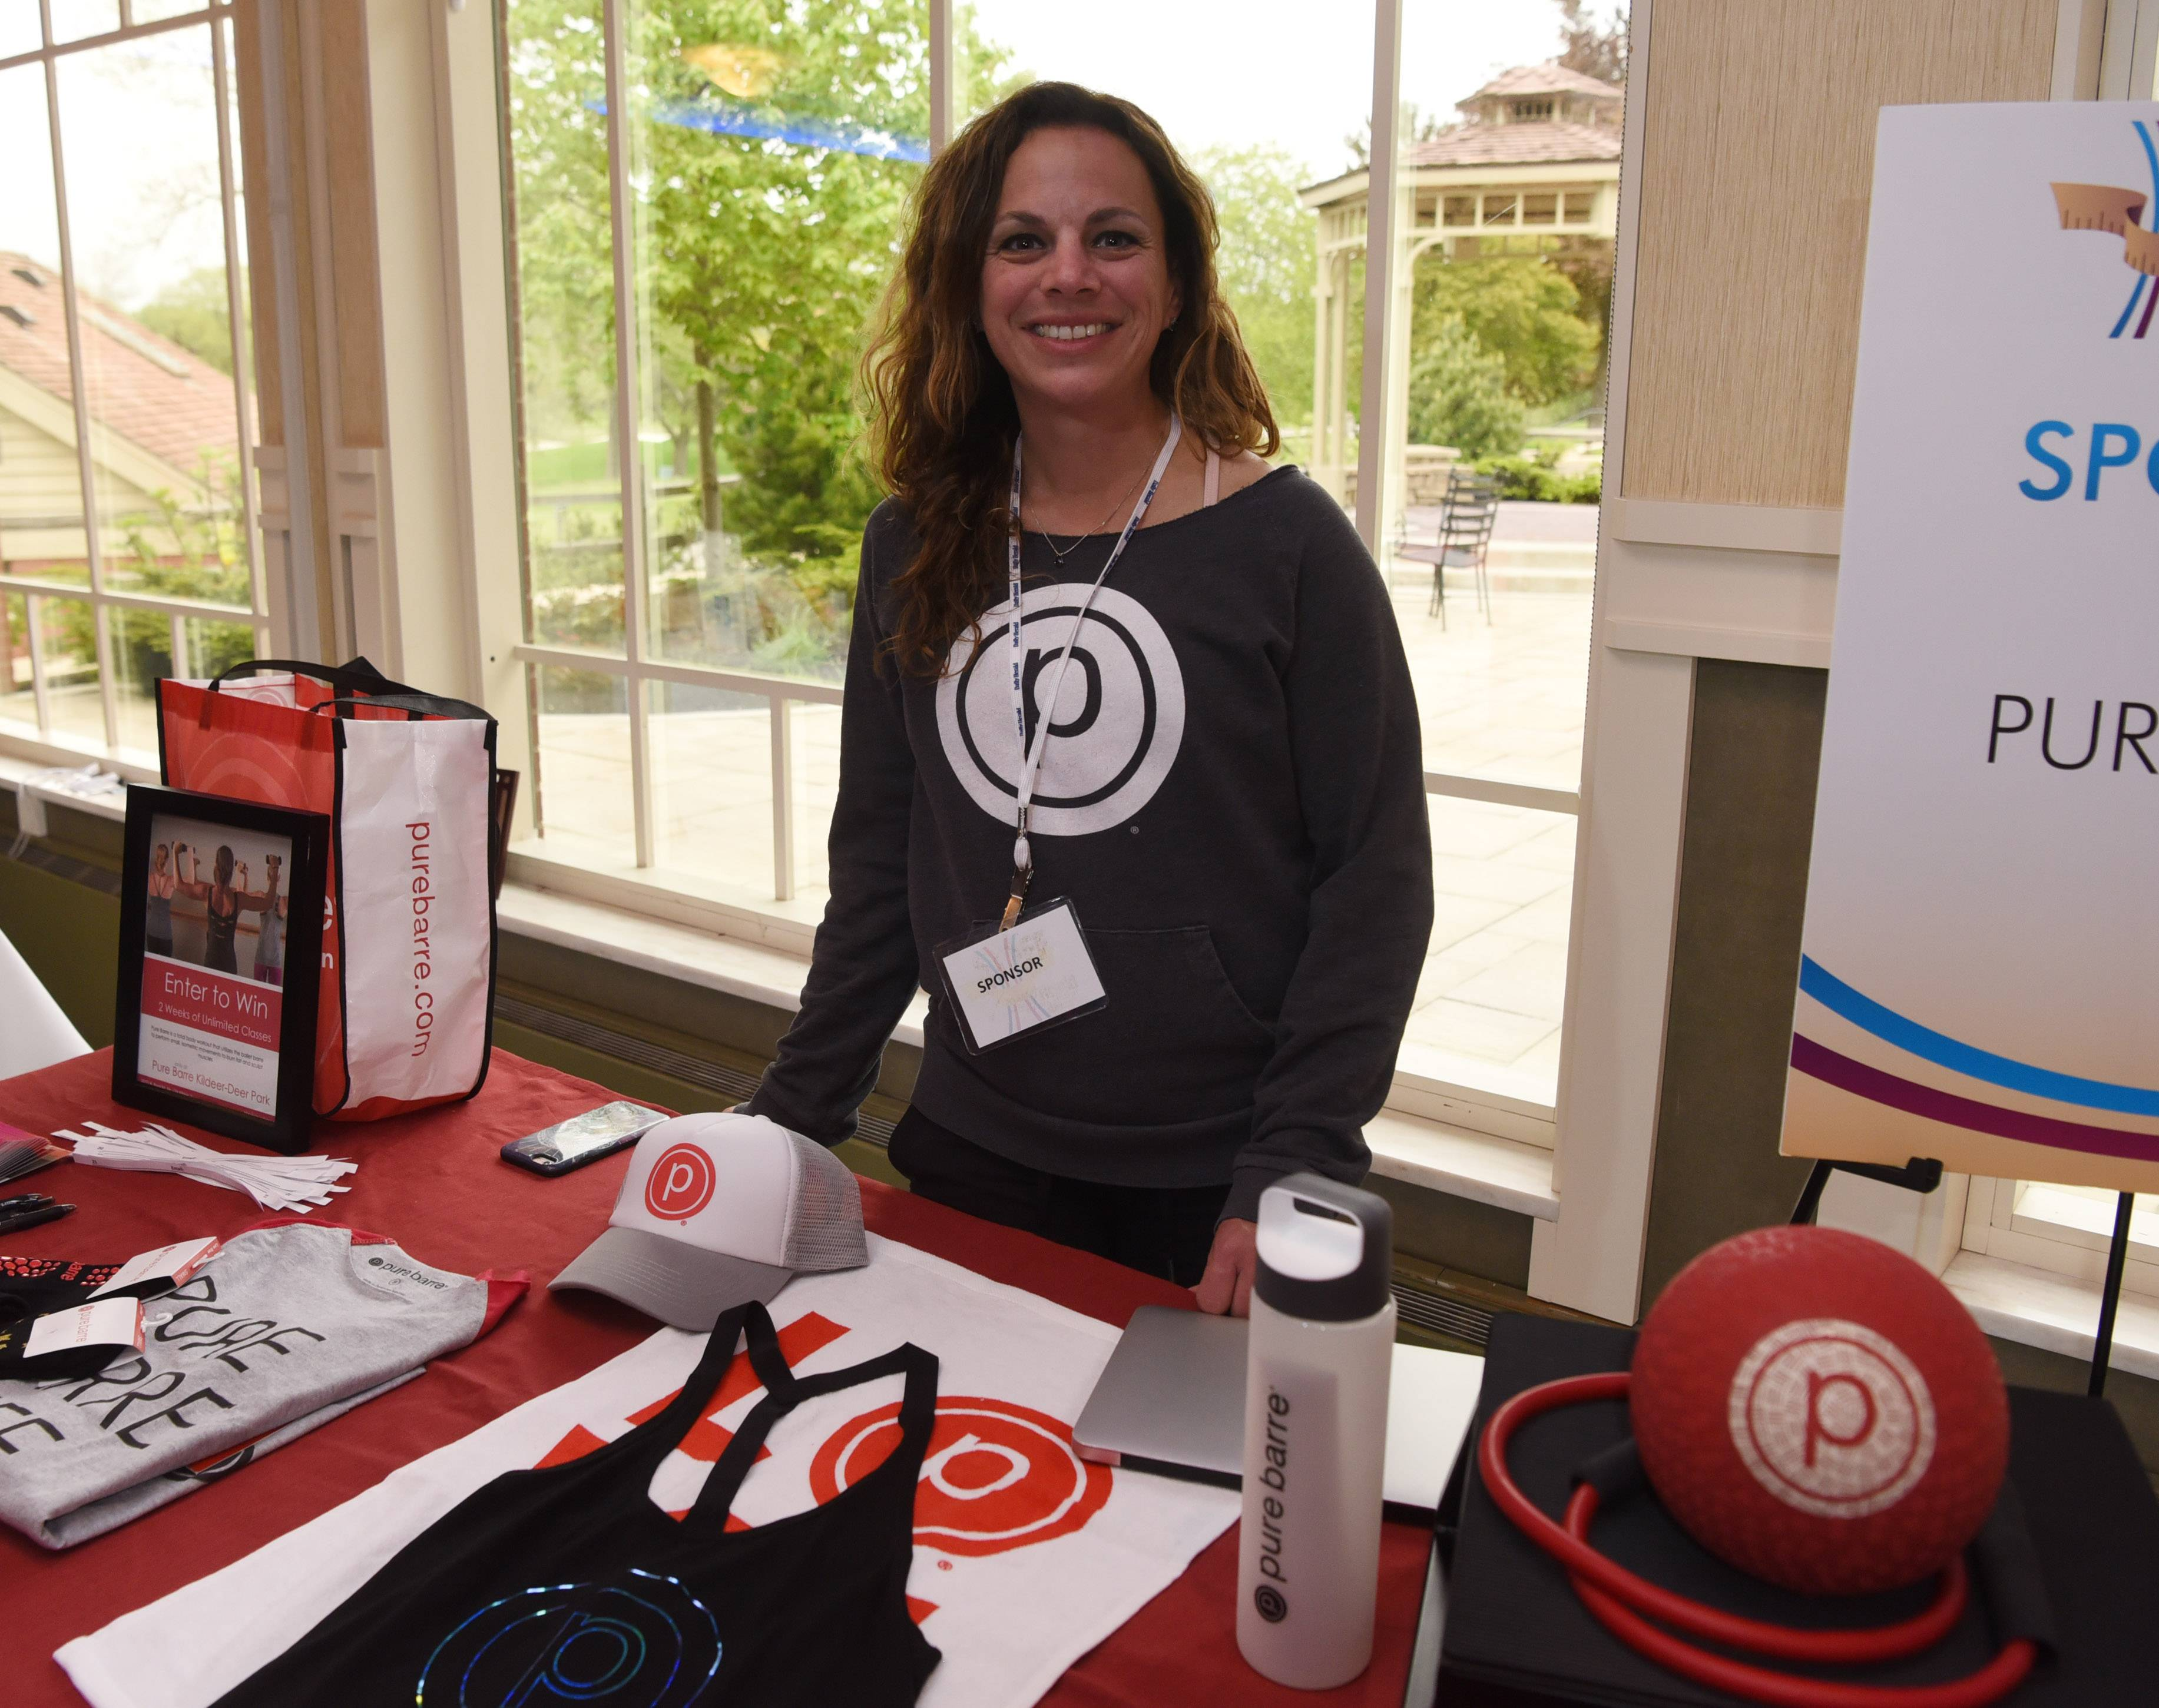 Faith Anne Wade, owner of Pure Barre, stands at her table during the finale of the Fittest Loser competition, held at Chandler's Banquets in Schaumburg Tuesday.